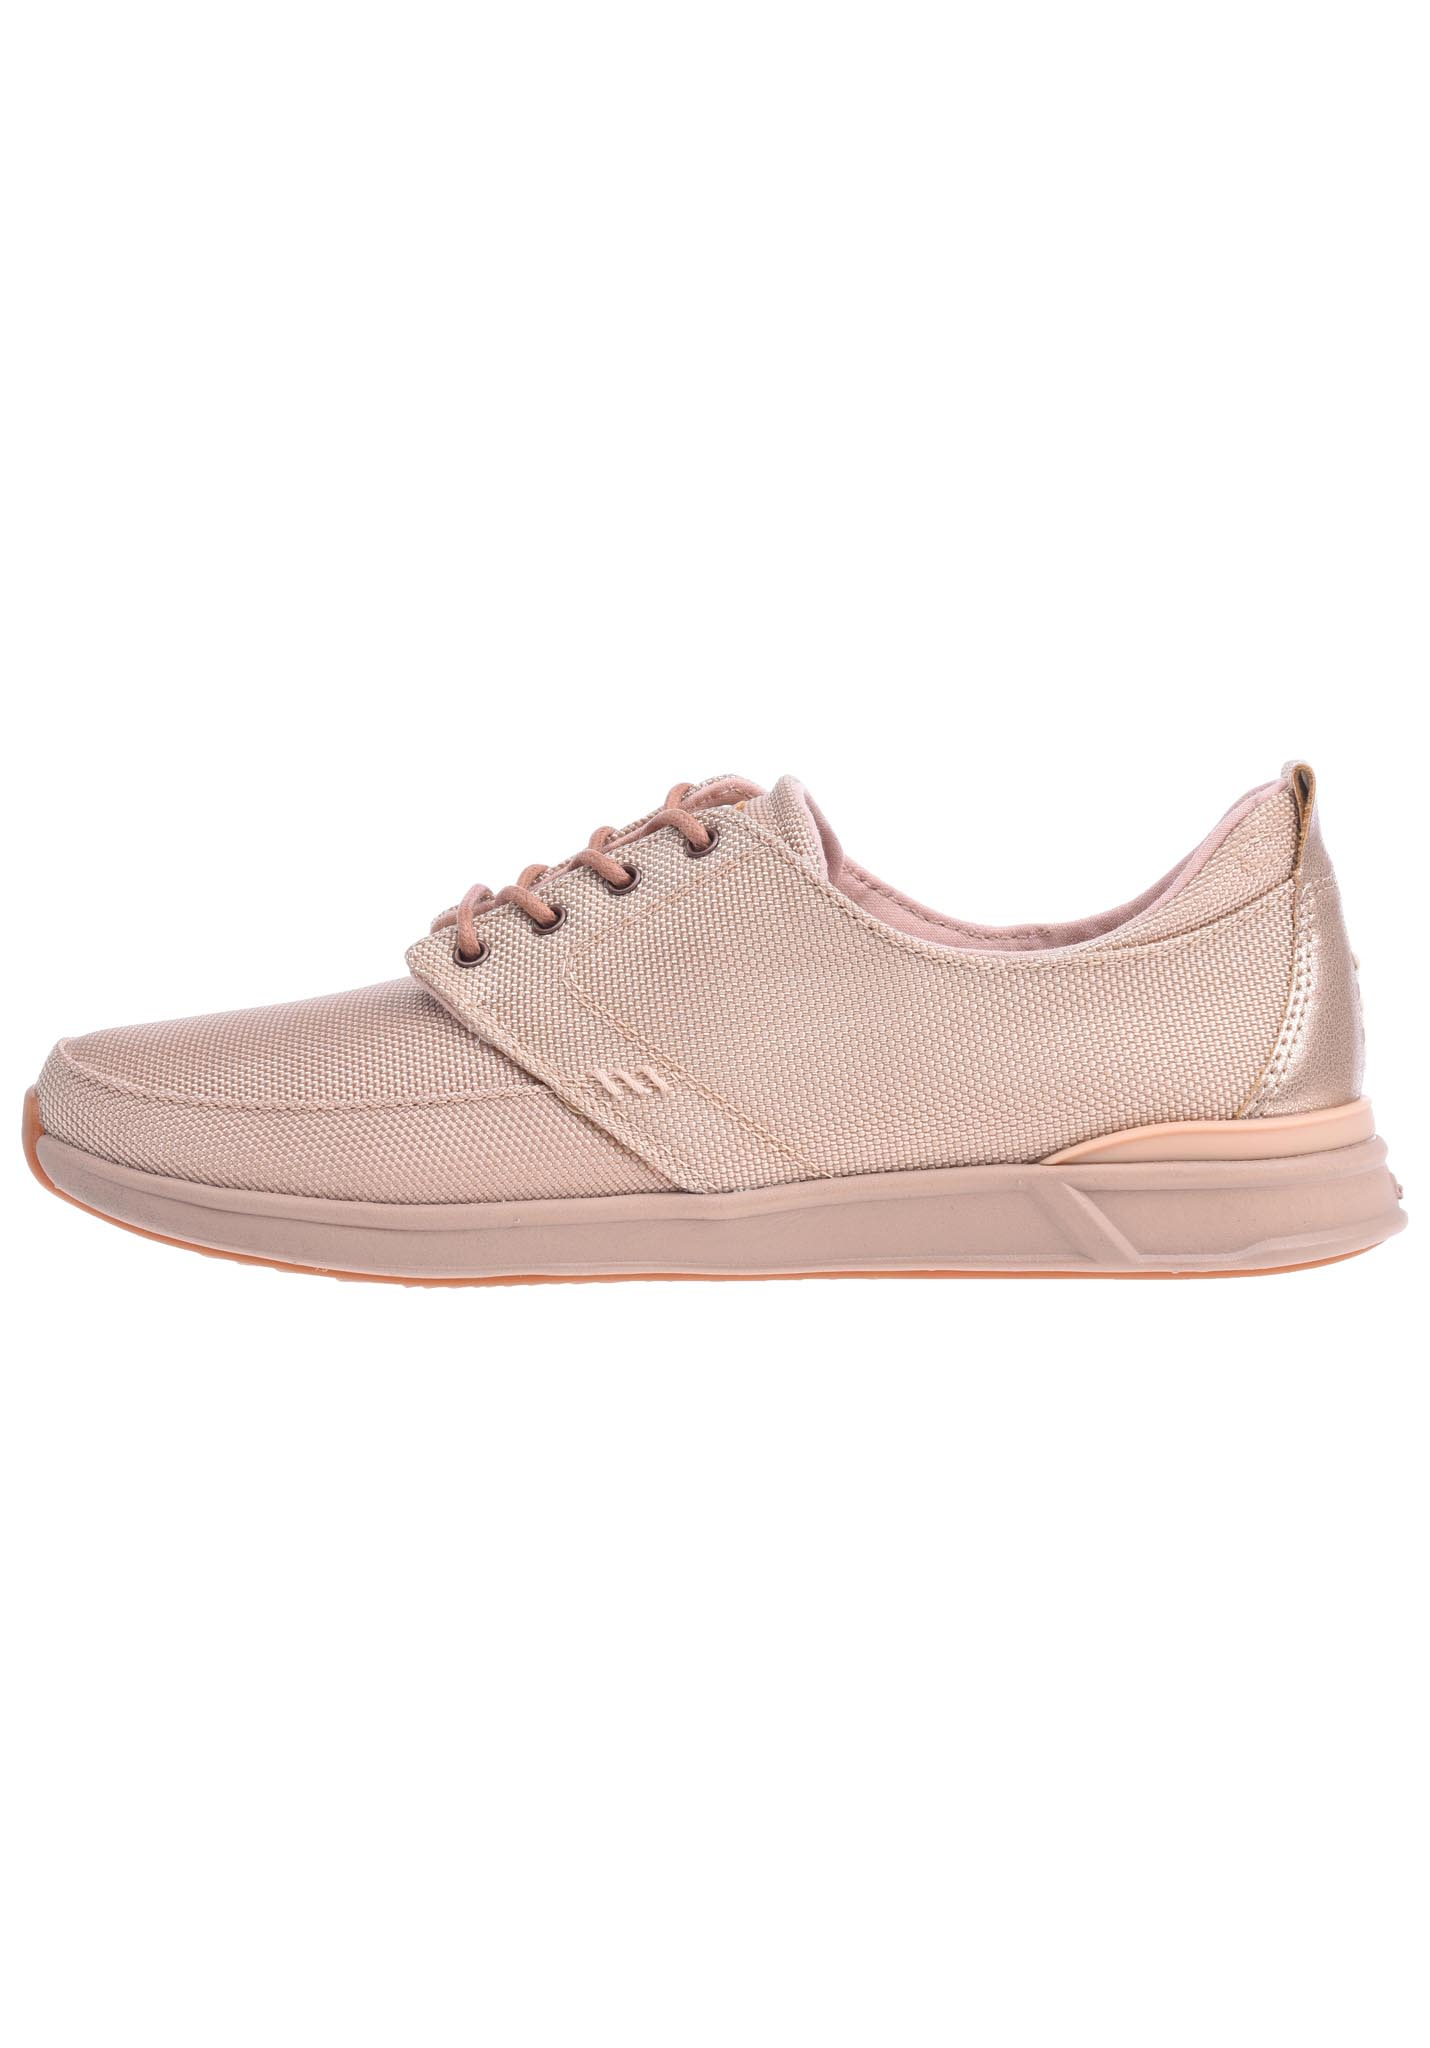 26d3068d808 Reef Rover Low Tx - Sneakers for Women - Pink - Planet Sports